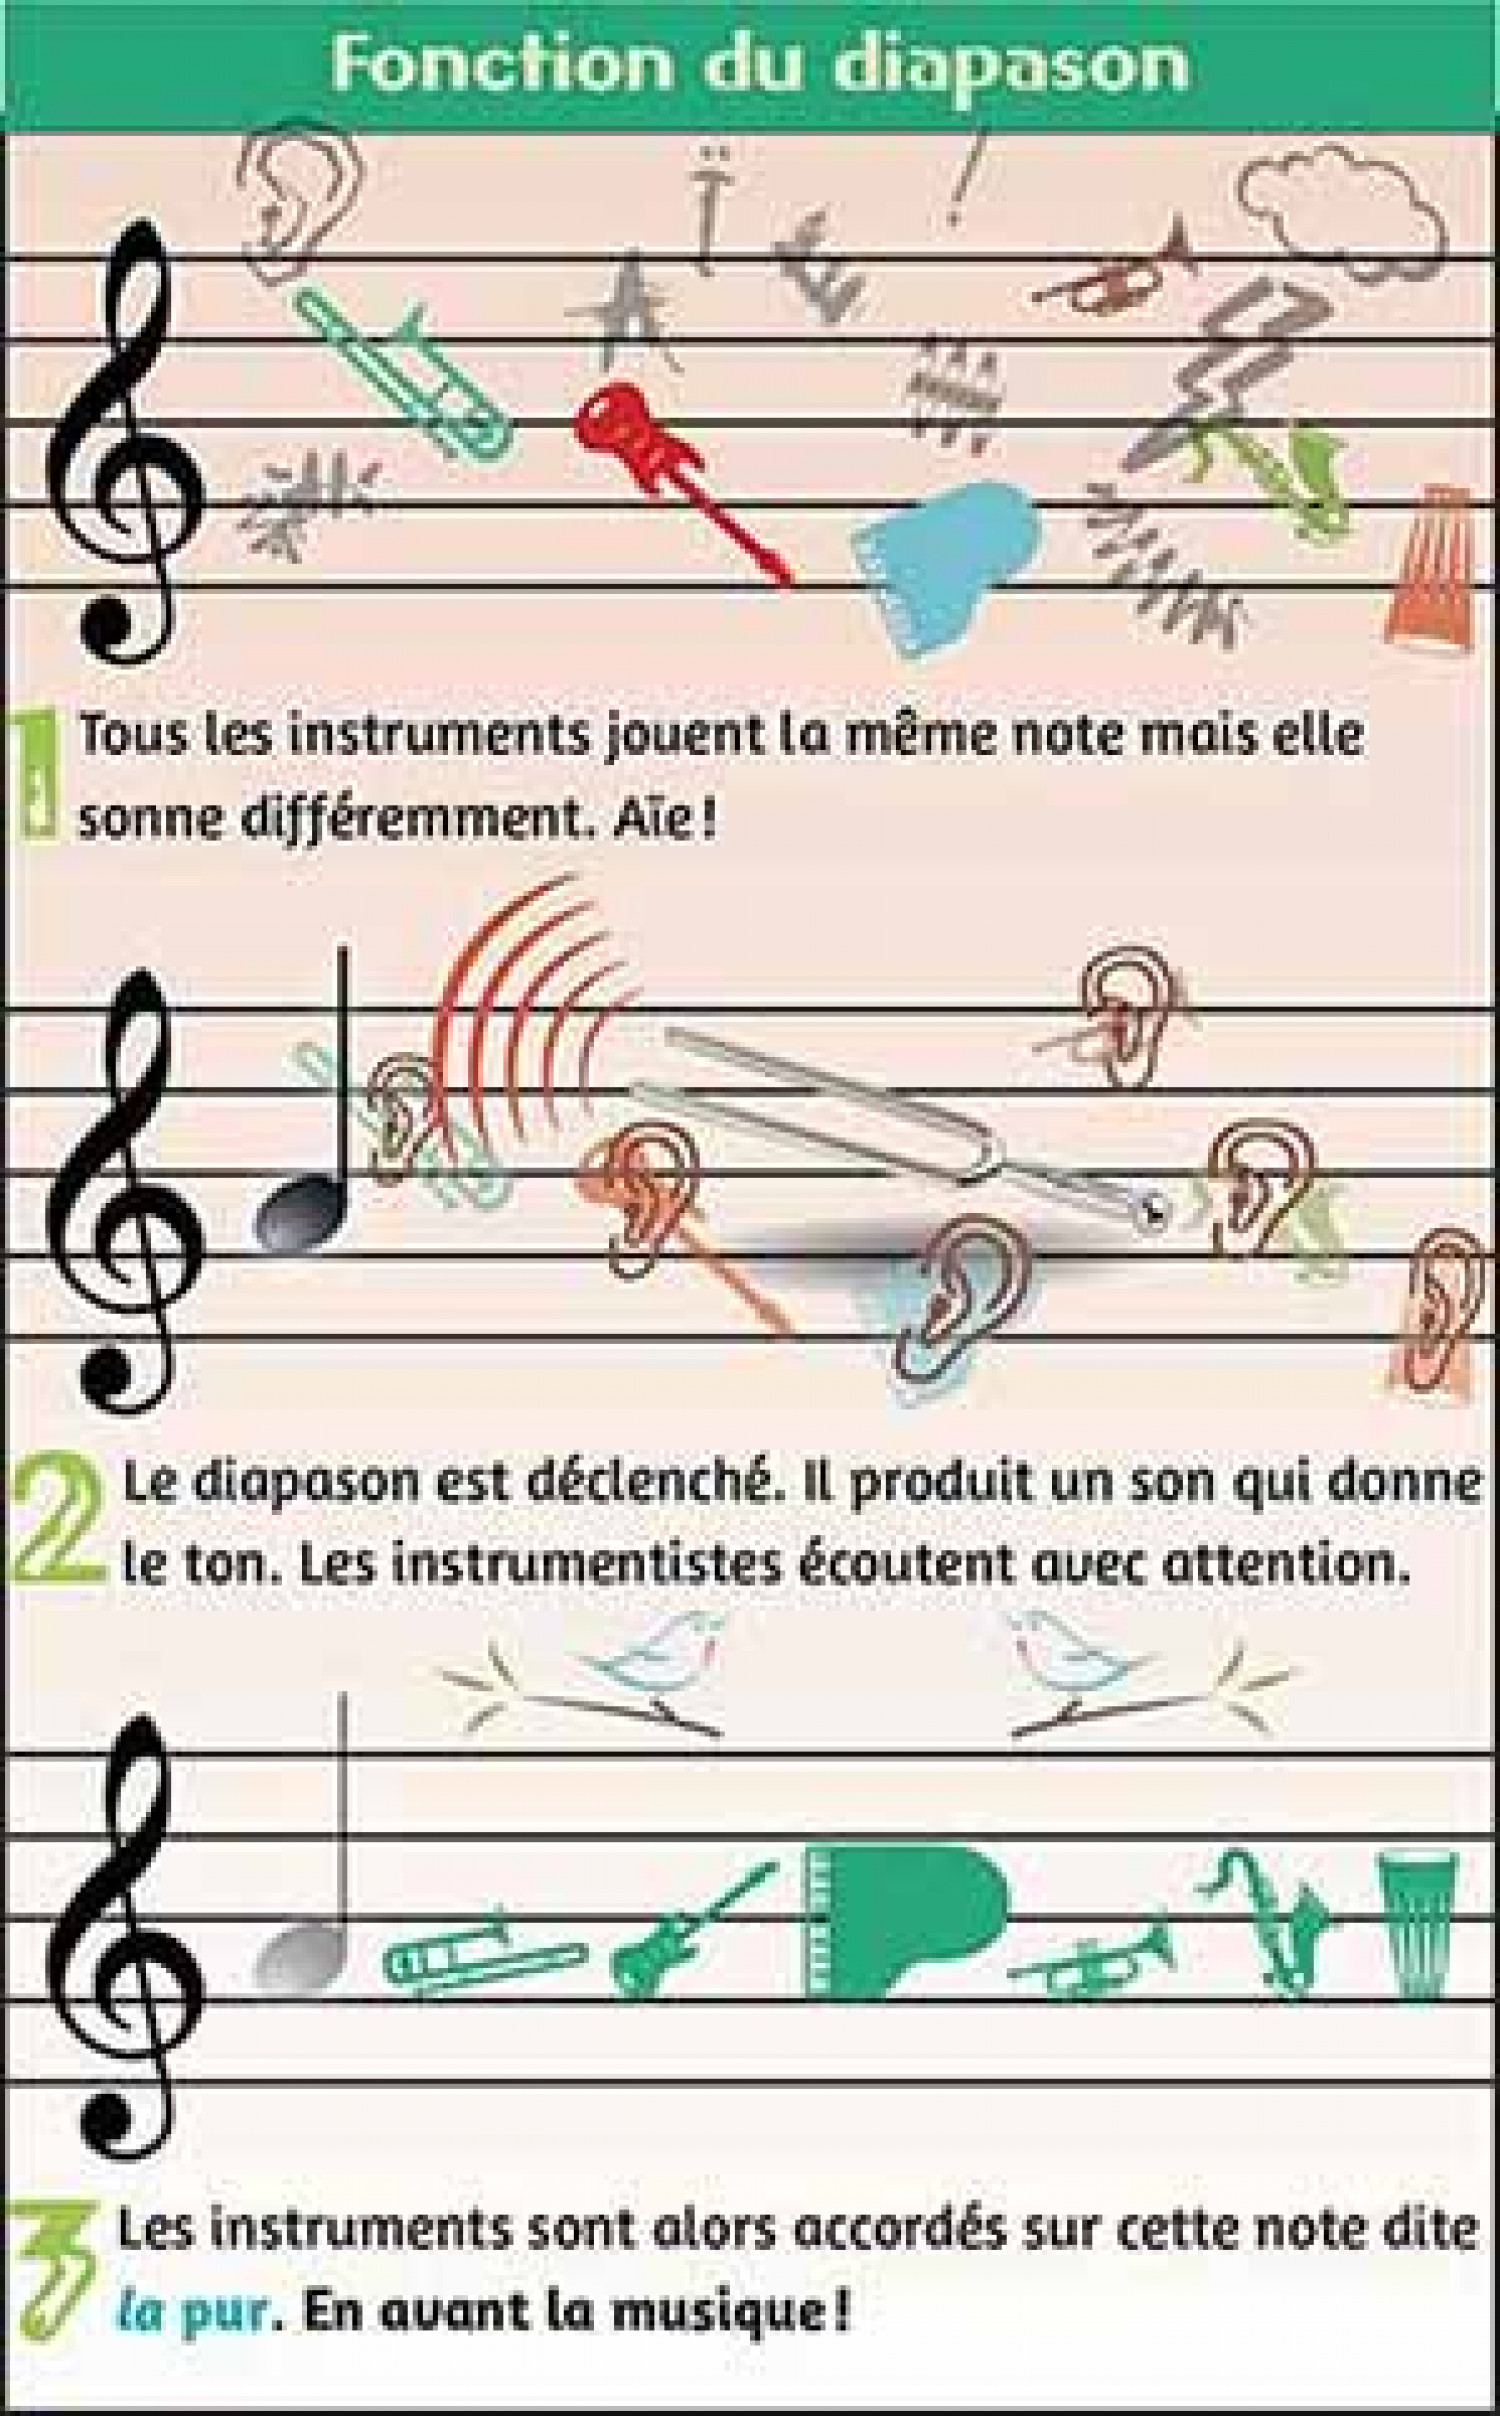 Fonction du diapason/What is the tuning fork for? Infographic